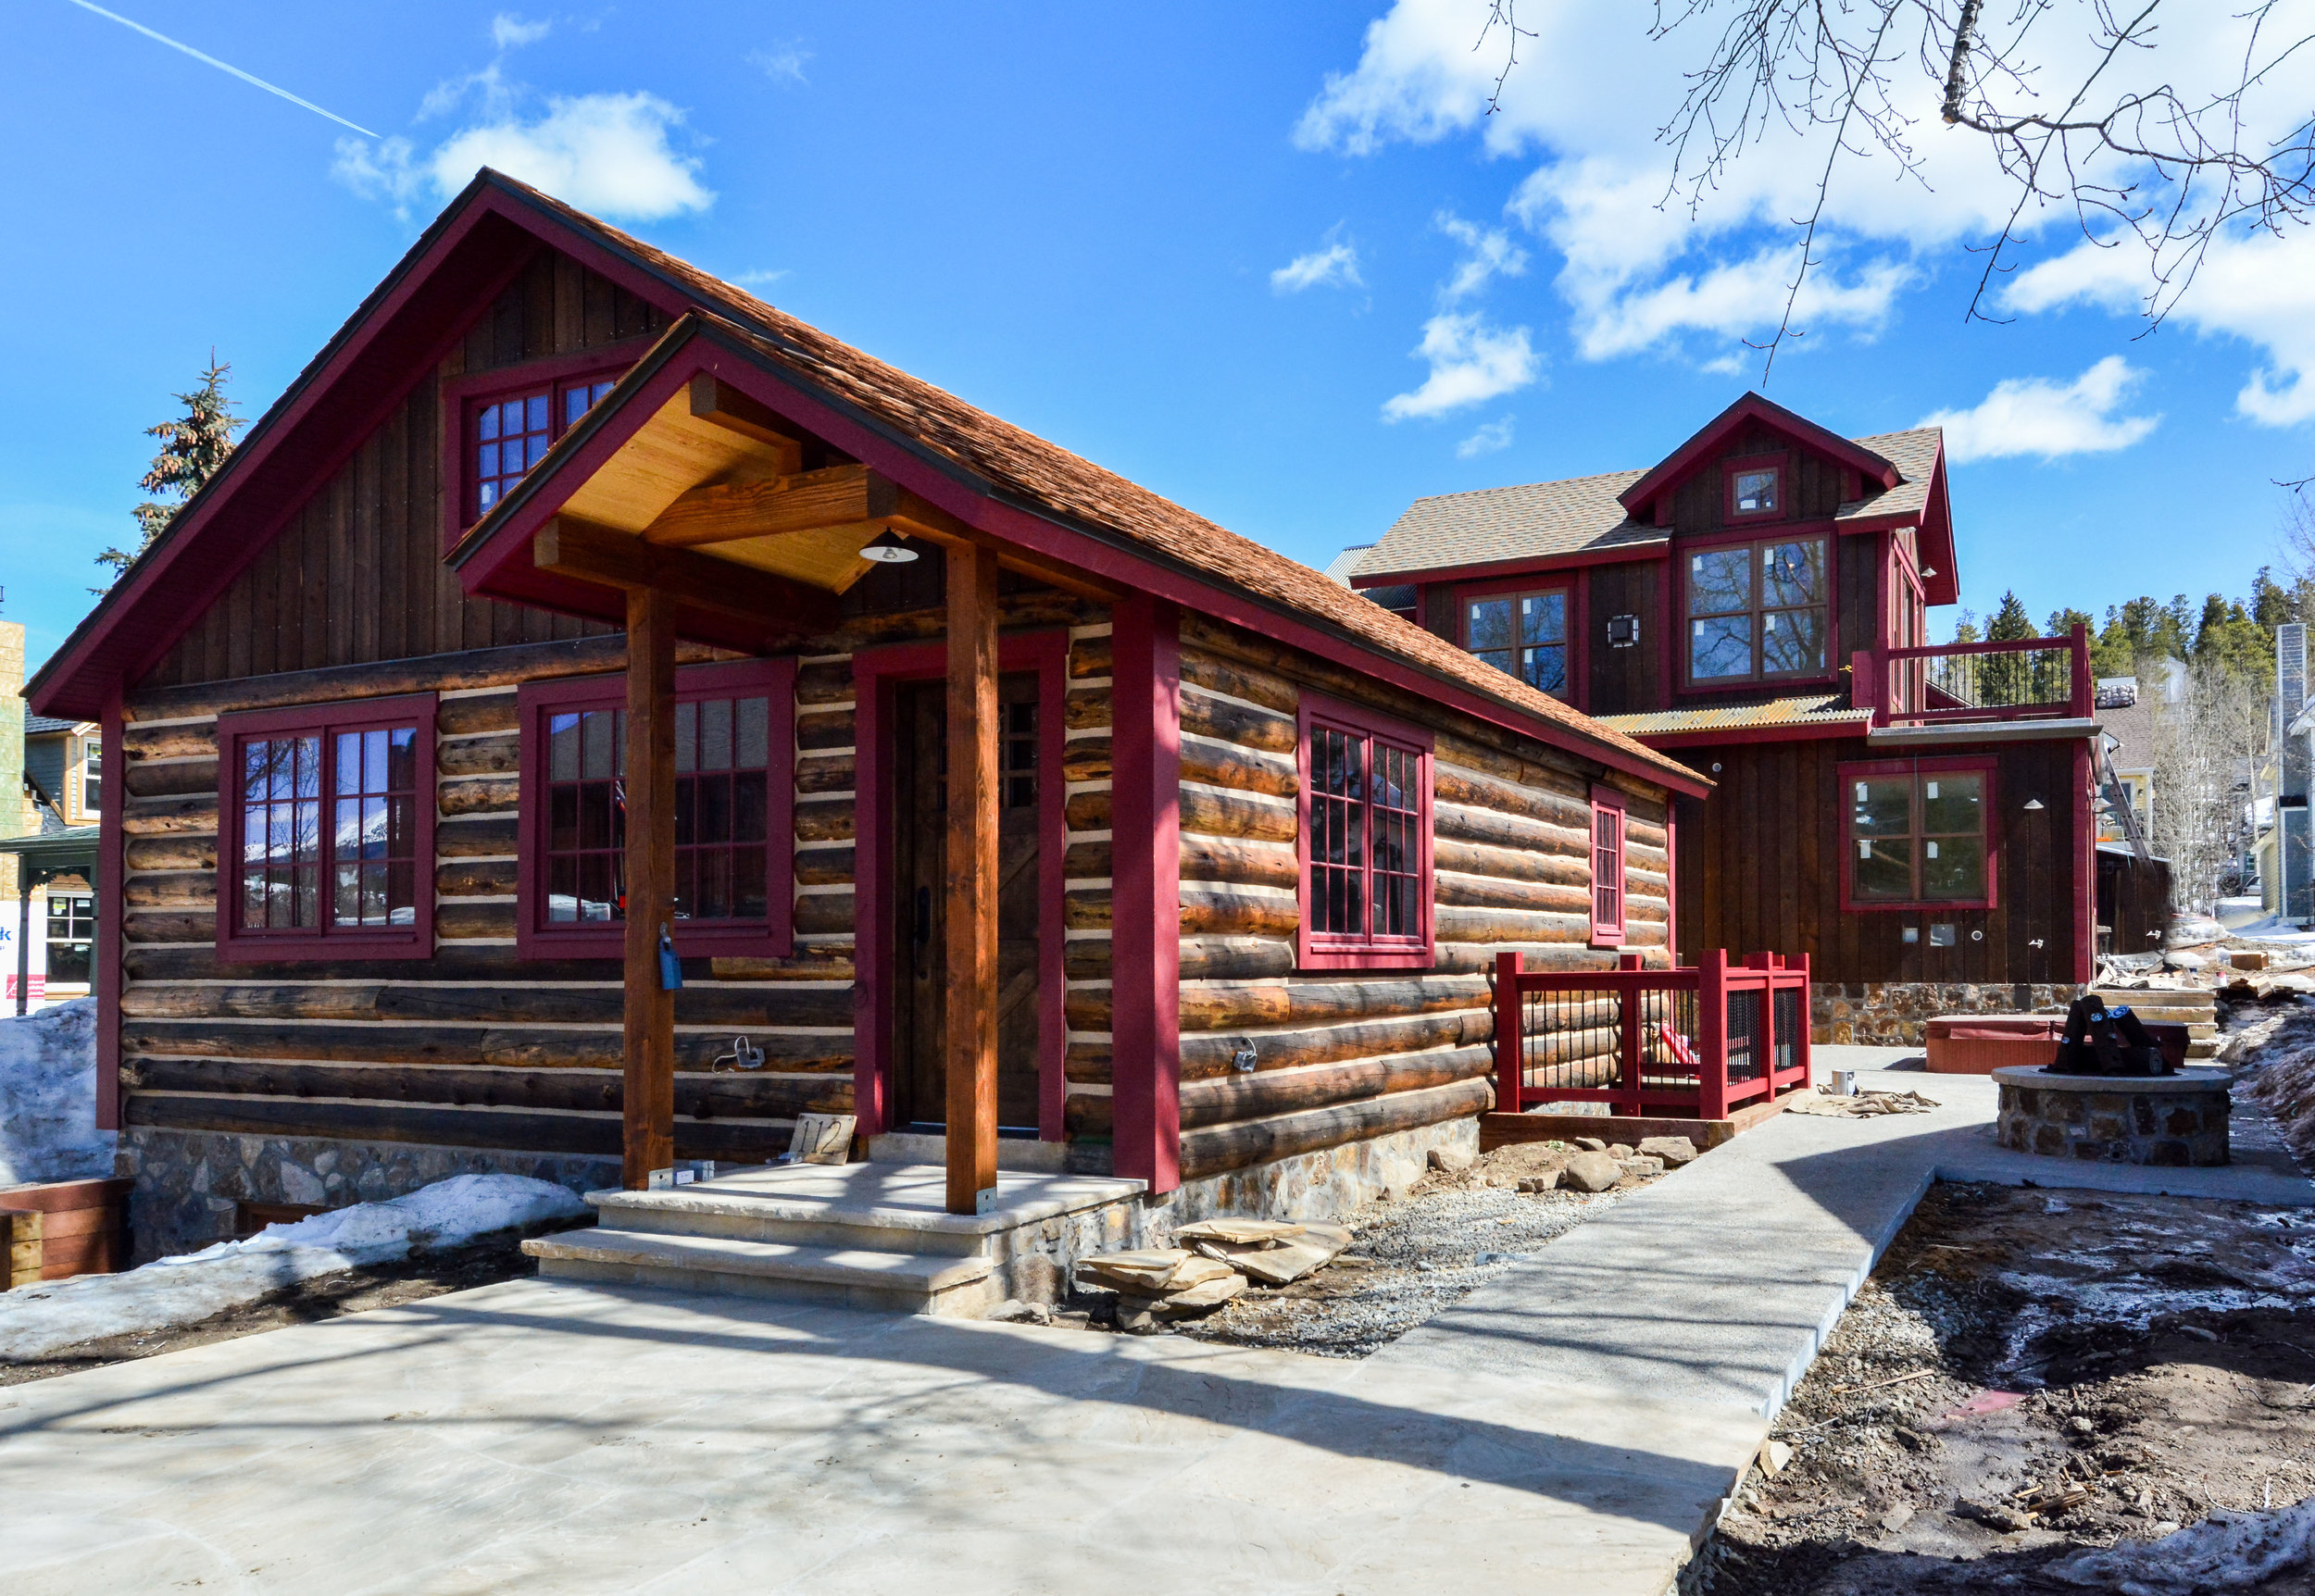 This home will be a new addition to the historic core of Breckenridge